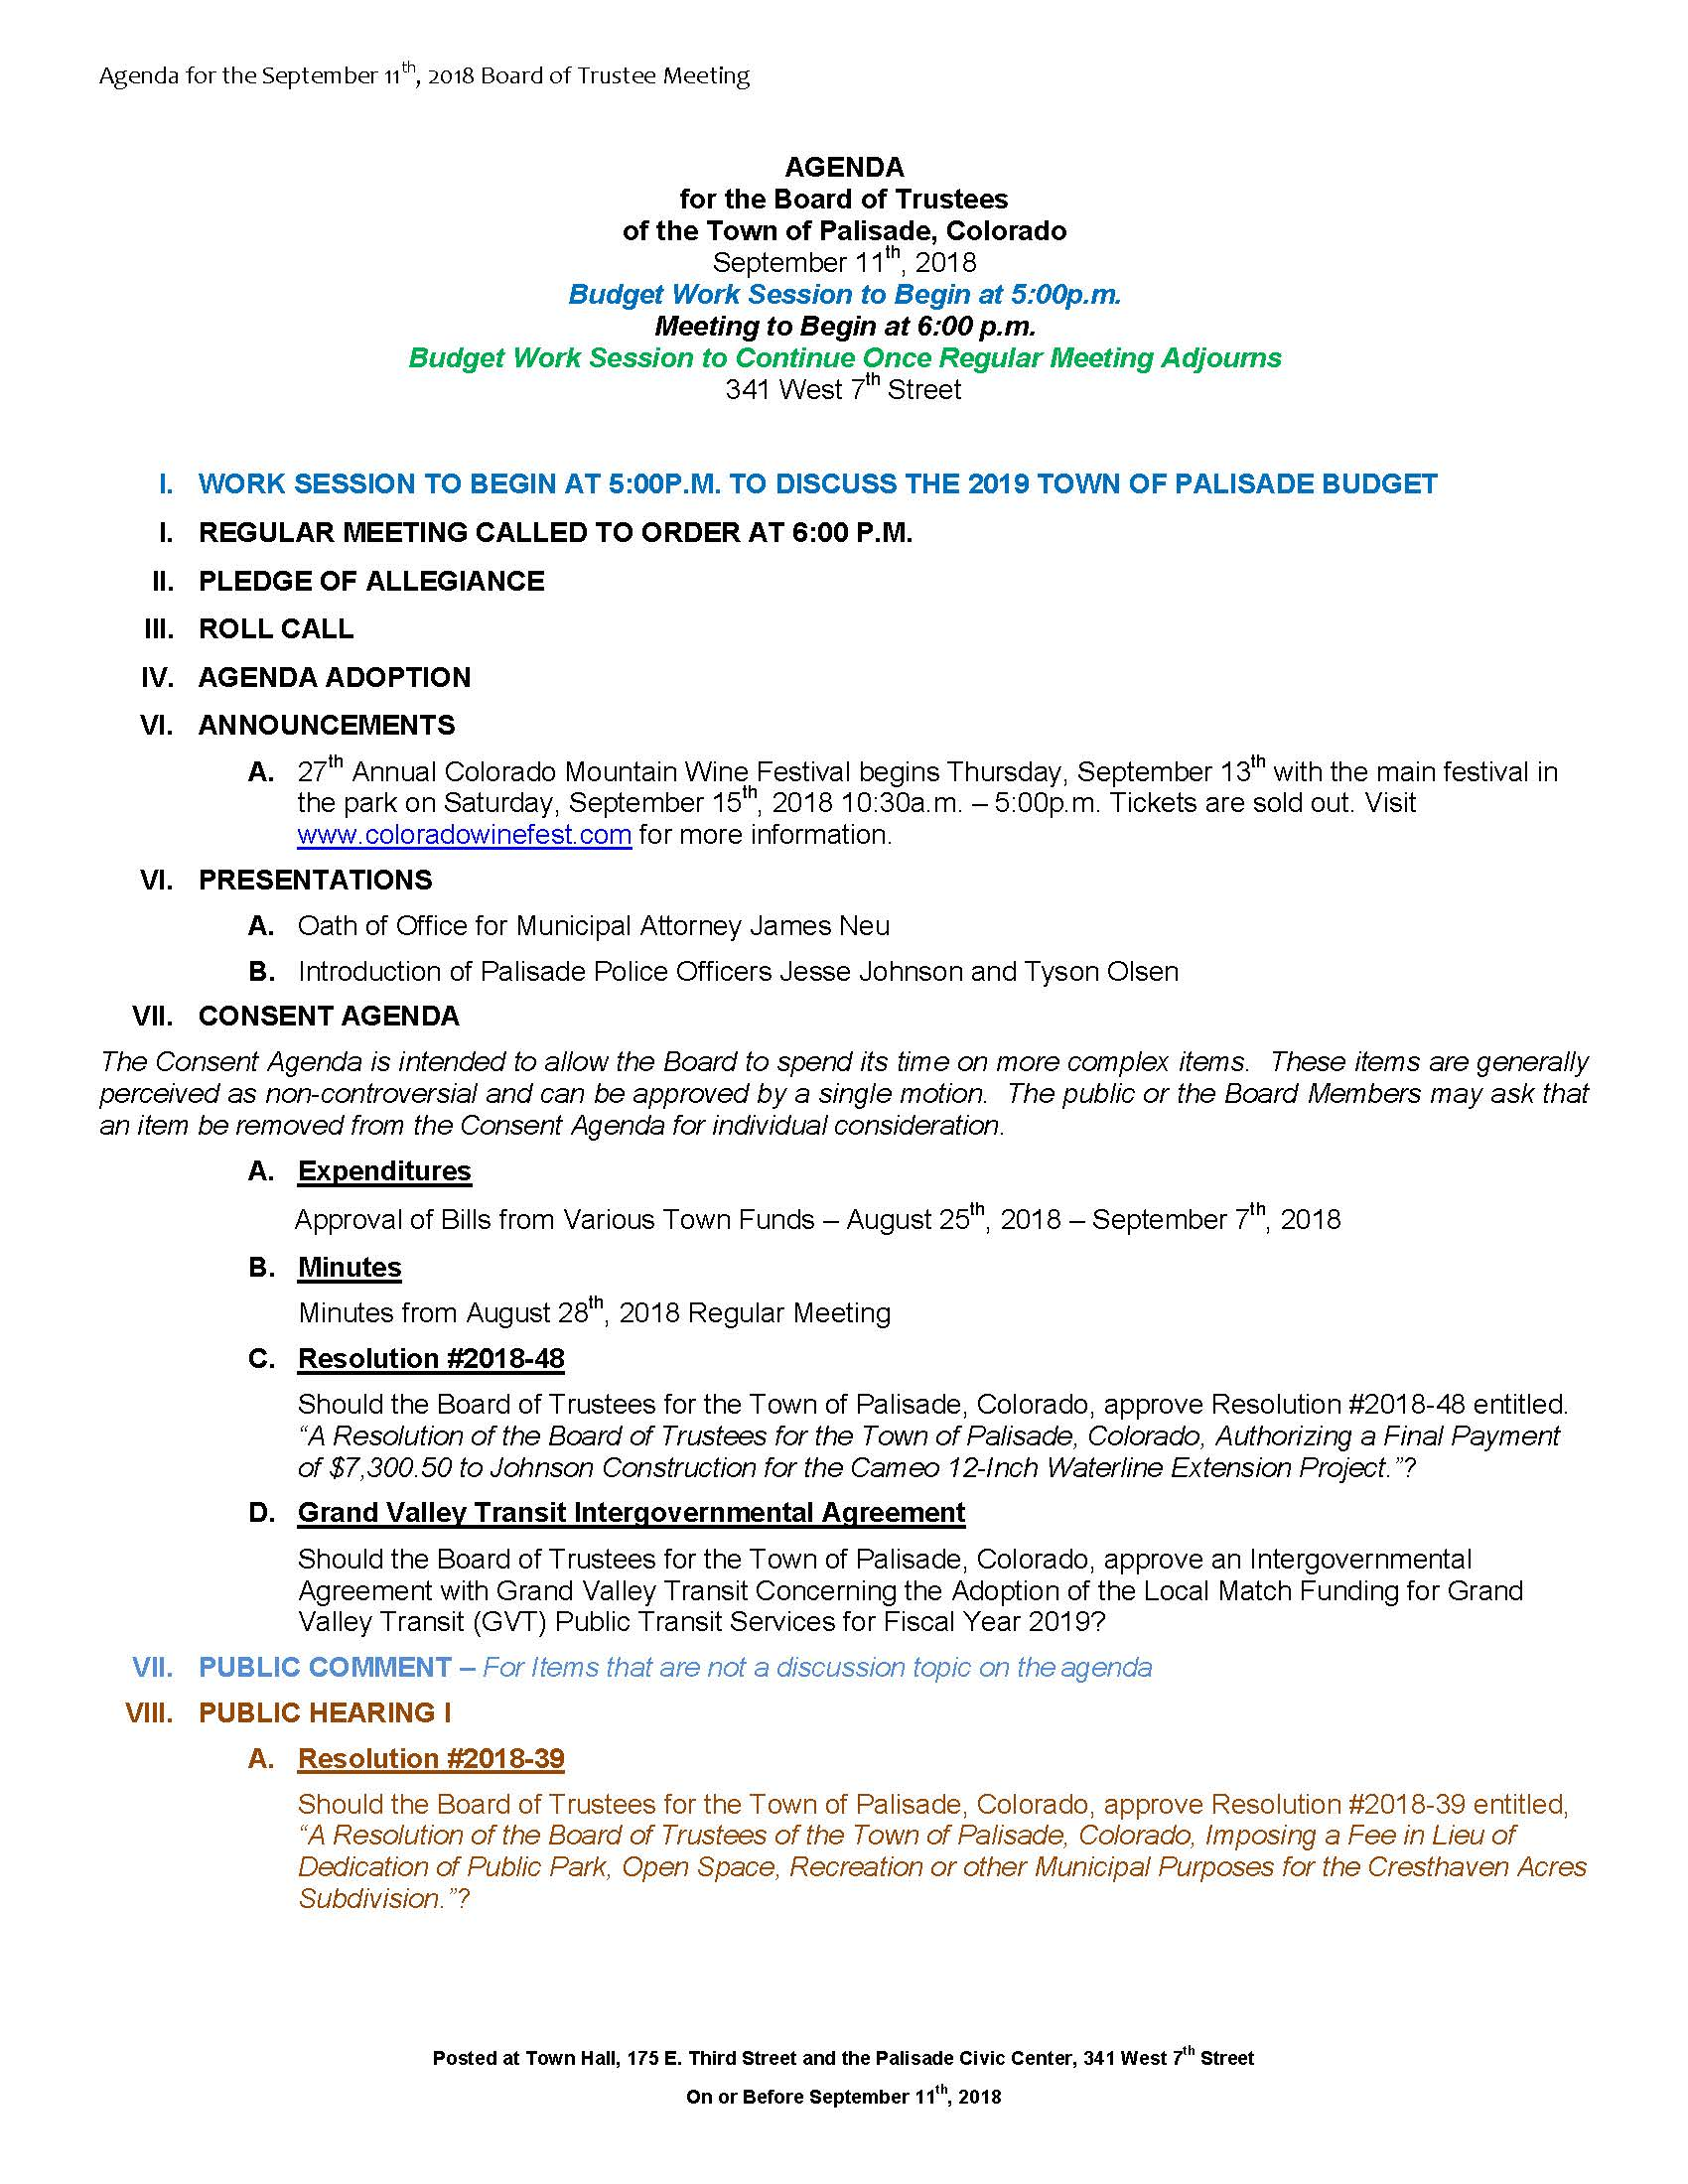 September 11th 2018 Board Meeting Agenda Page 1